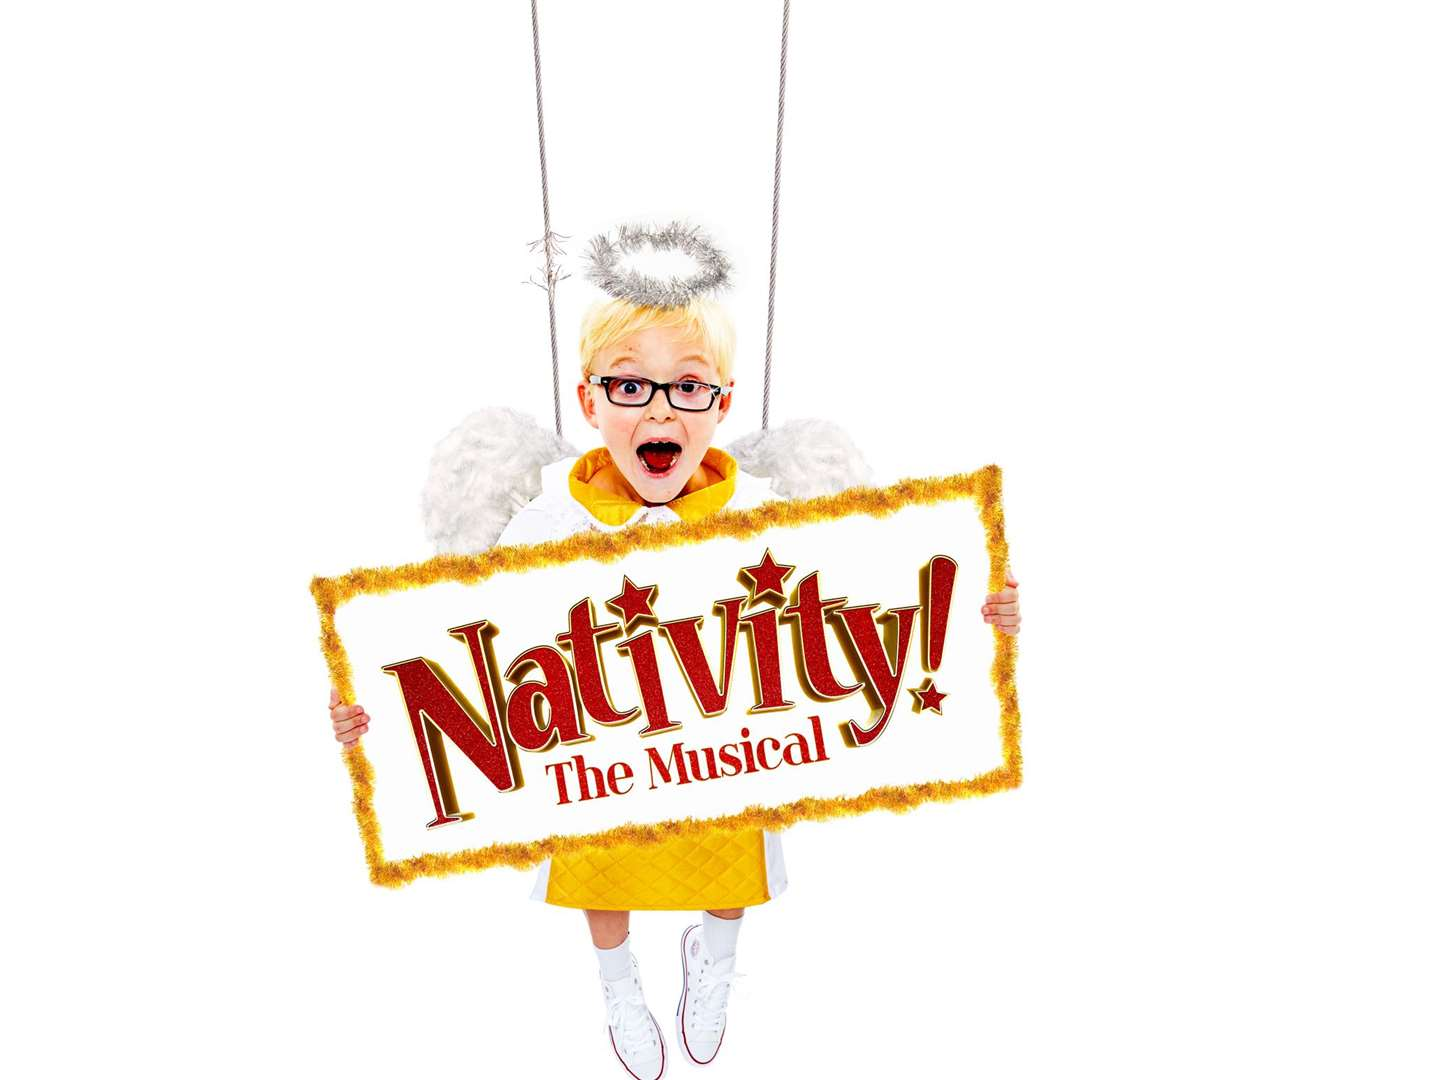 Nativity! The Musical!